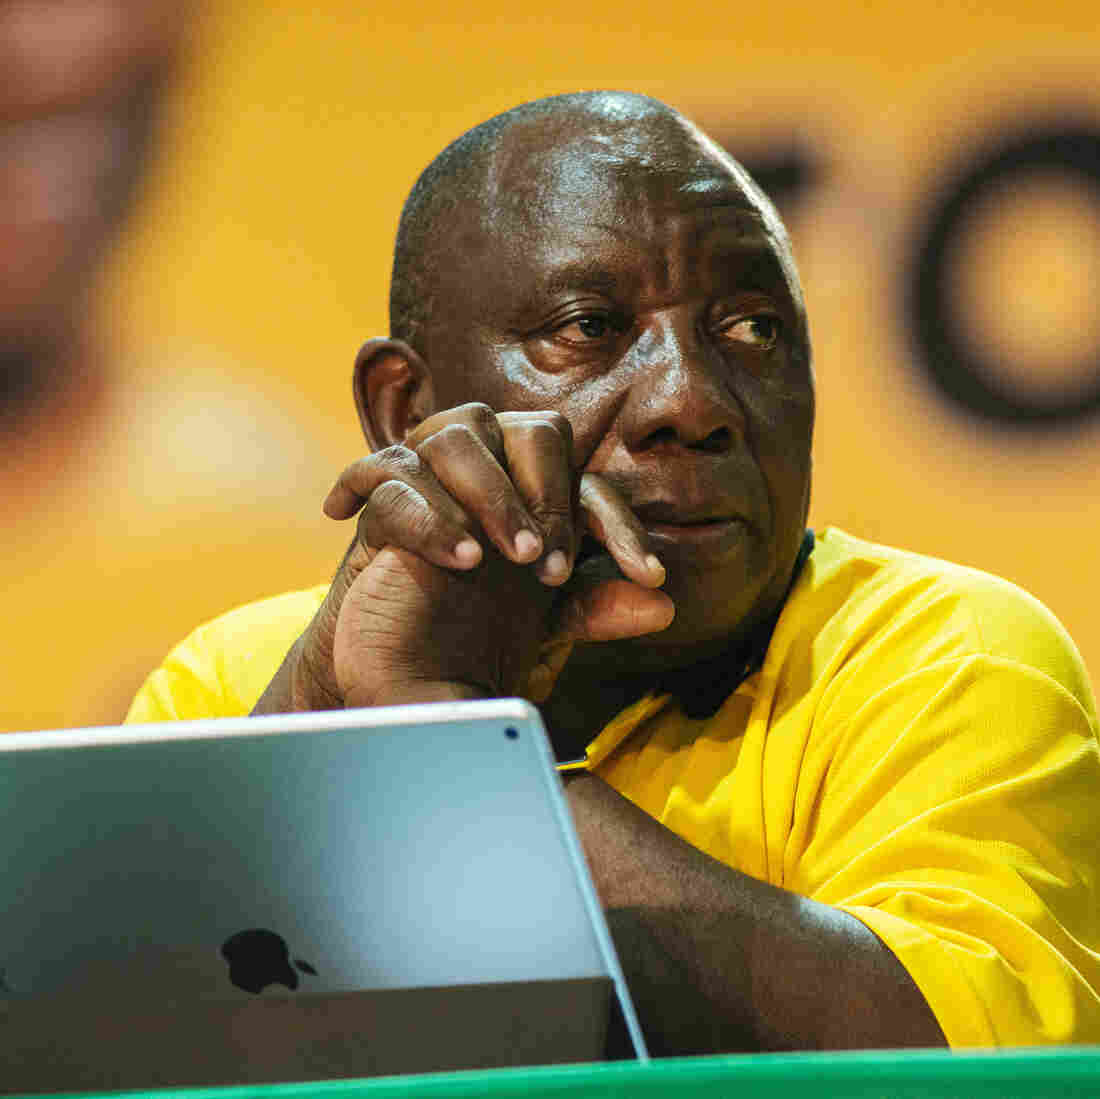 S.Africa's ANC party wrestles over choice of new leader